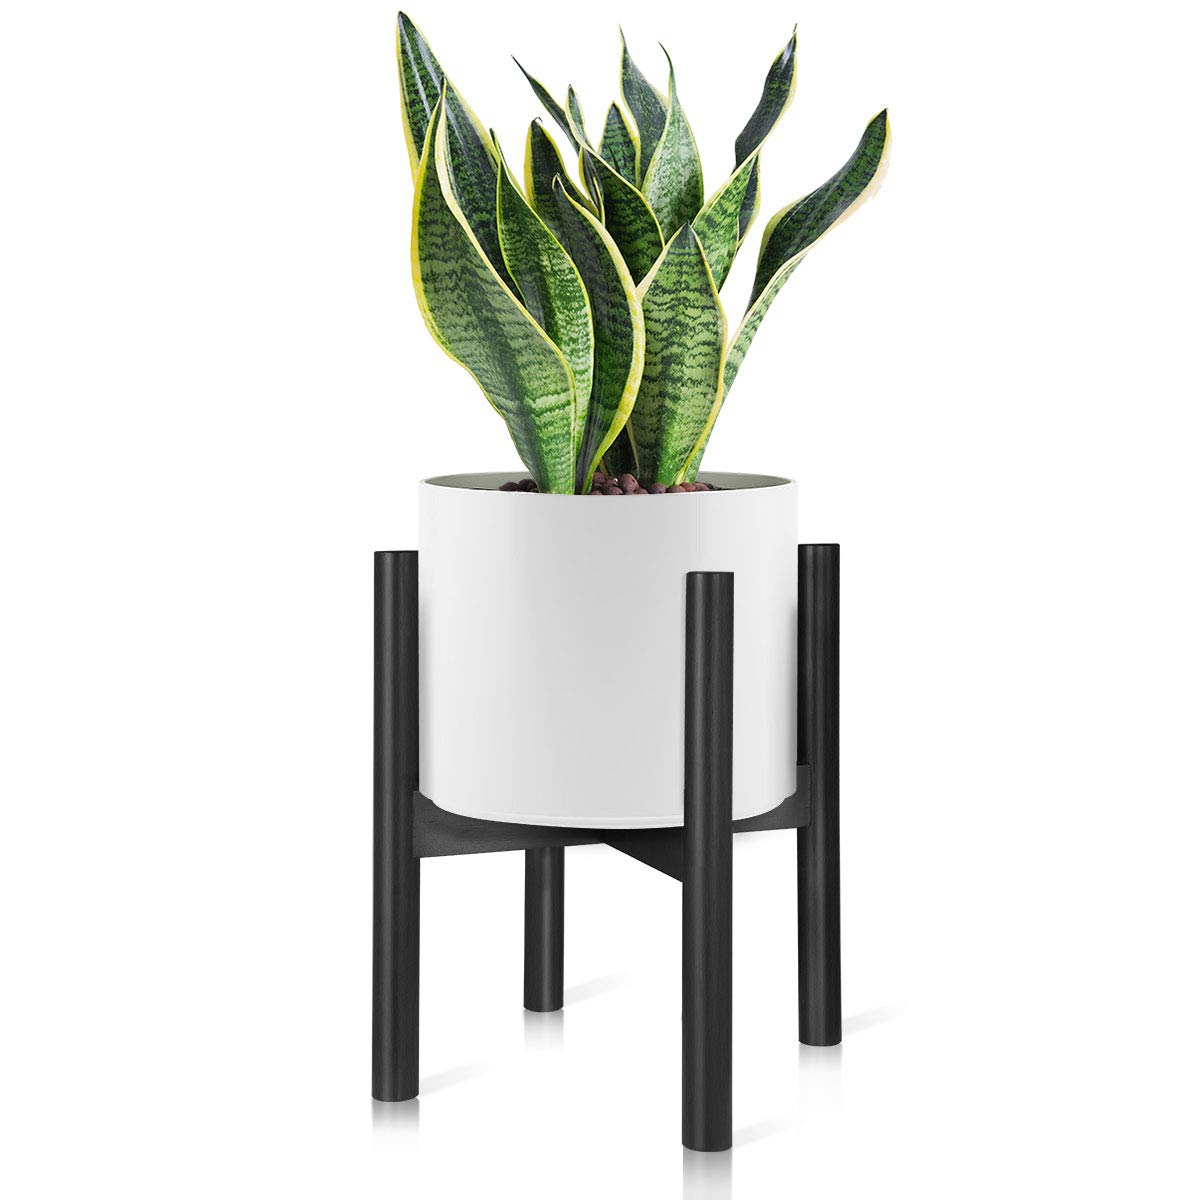 Homemaxs Plant Stands Indoor, Mid Century Plant Holder Indoor Display Stand - Unique Adjustable Feet Design,10 Inch Modern Tall Plant Stand Bamboo Plant Display Rack -Black